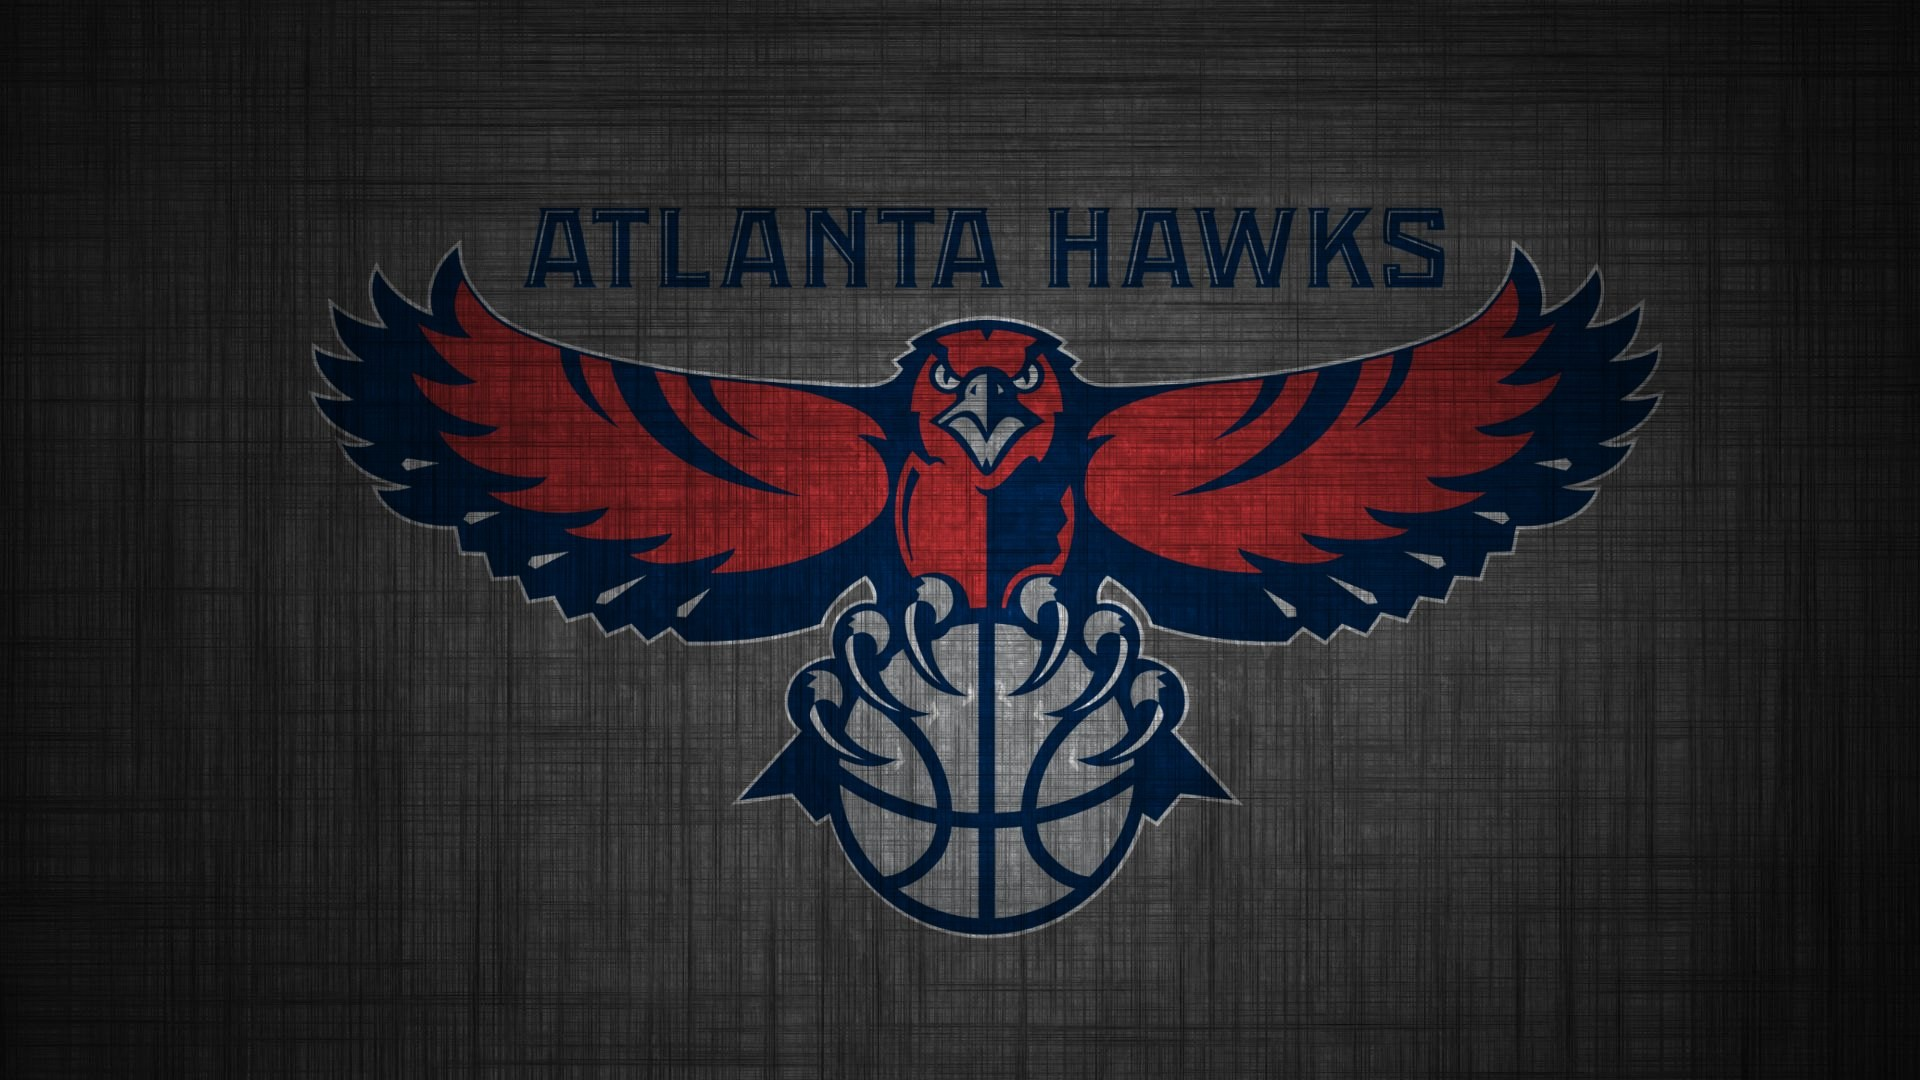 Res: 1920x1080, Atlanta Hawks Wallpaper HD.